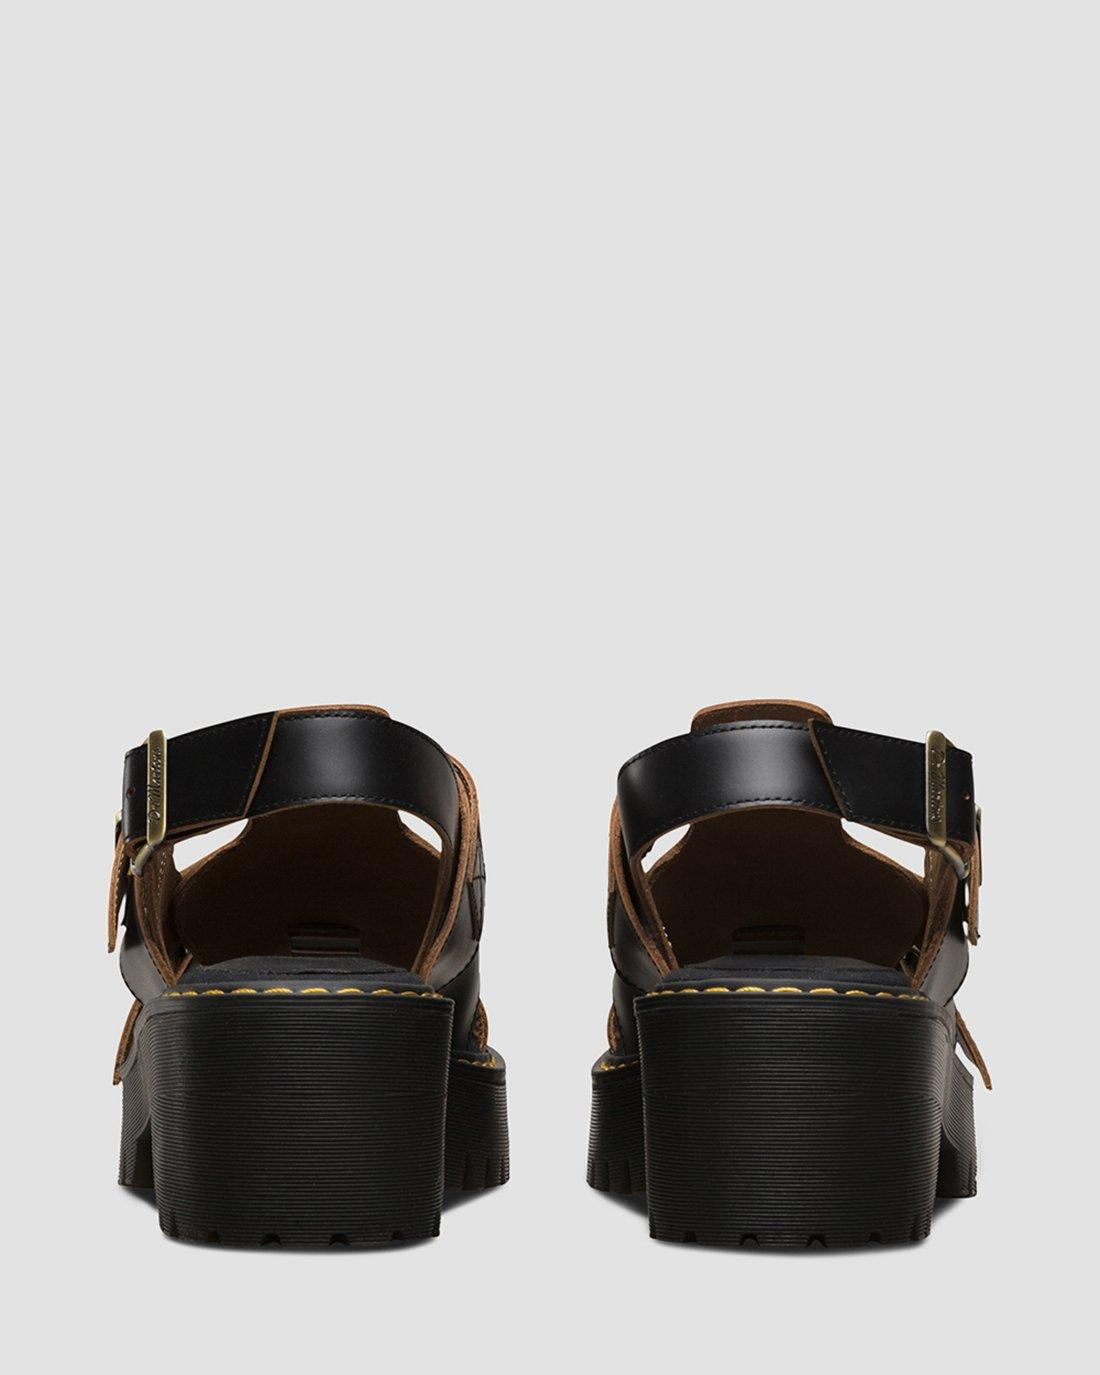 Dr.Martens Ariel Black Womens Vintage Smooth Sandals from